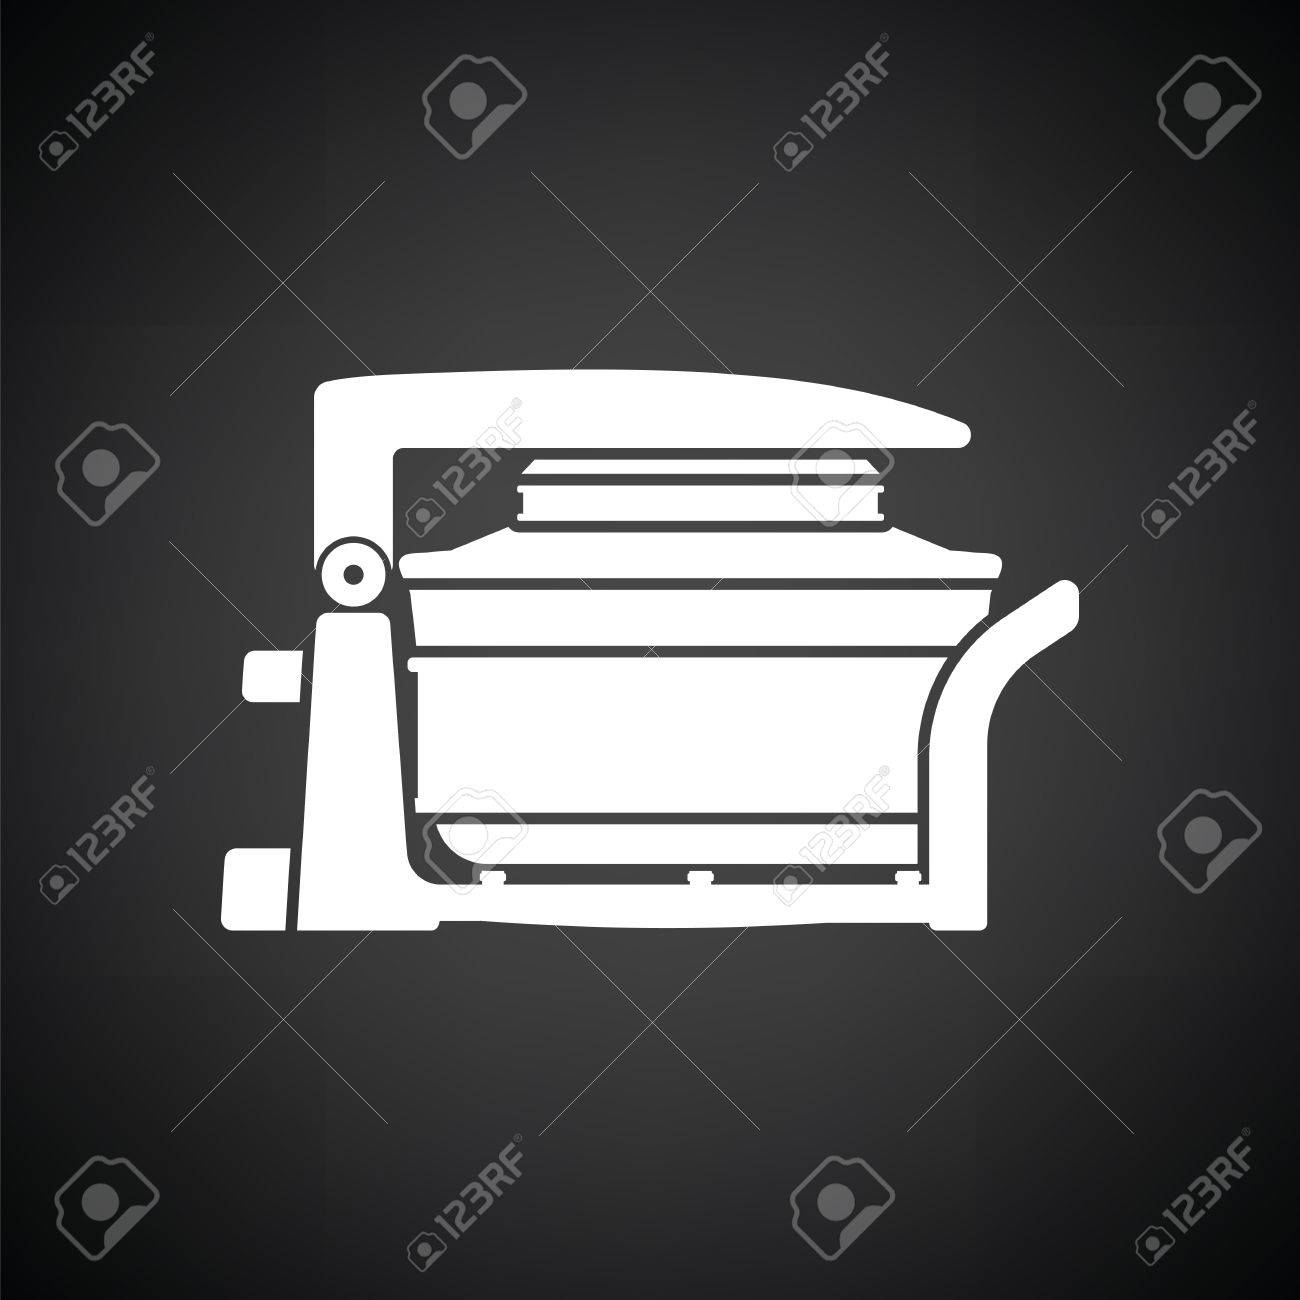 Electric Convection Oven Icon Black Background With White Vector 1300x1300